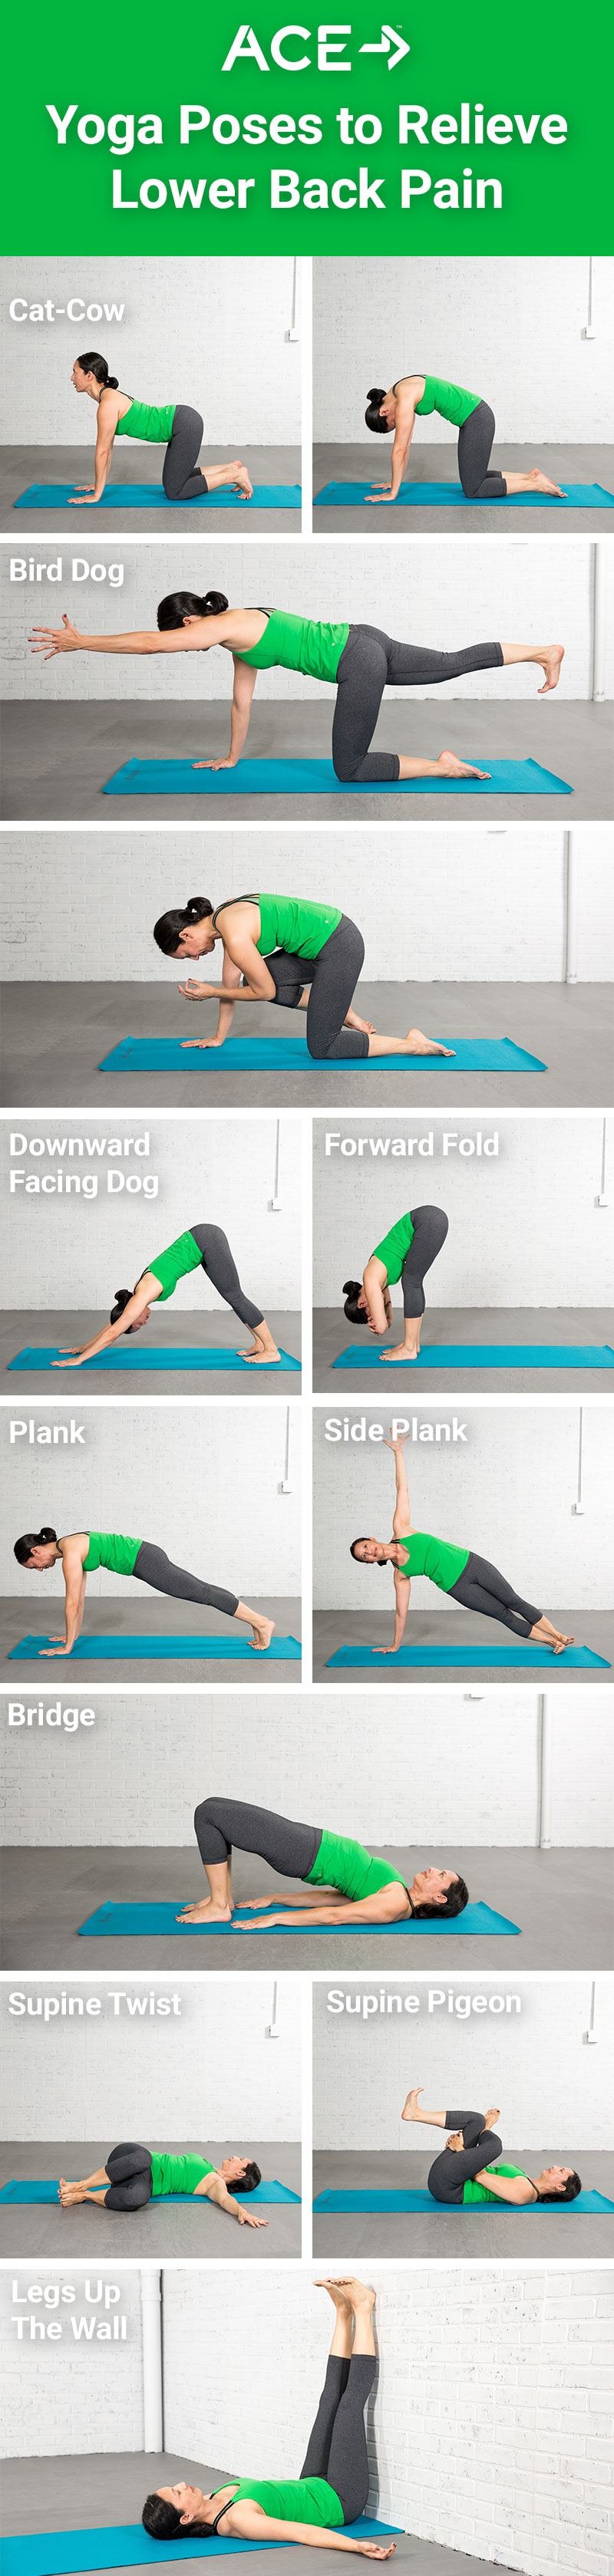 Lower Back Pain Yoga Asanas